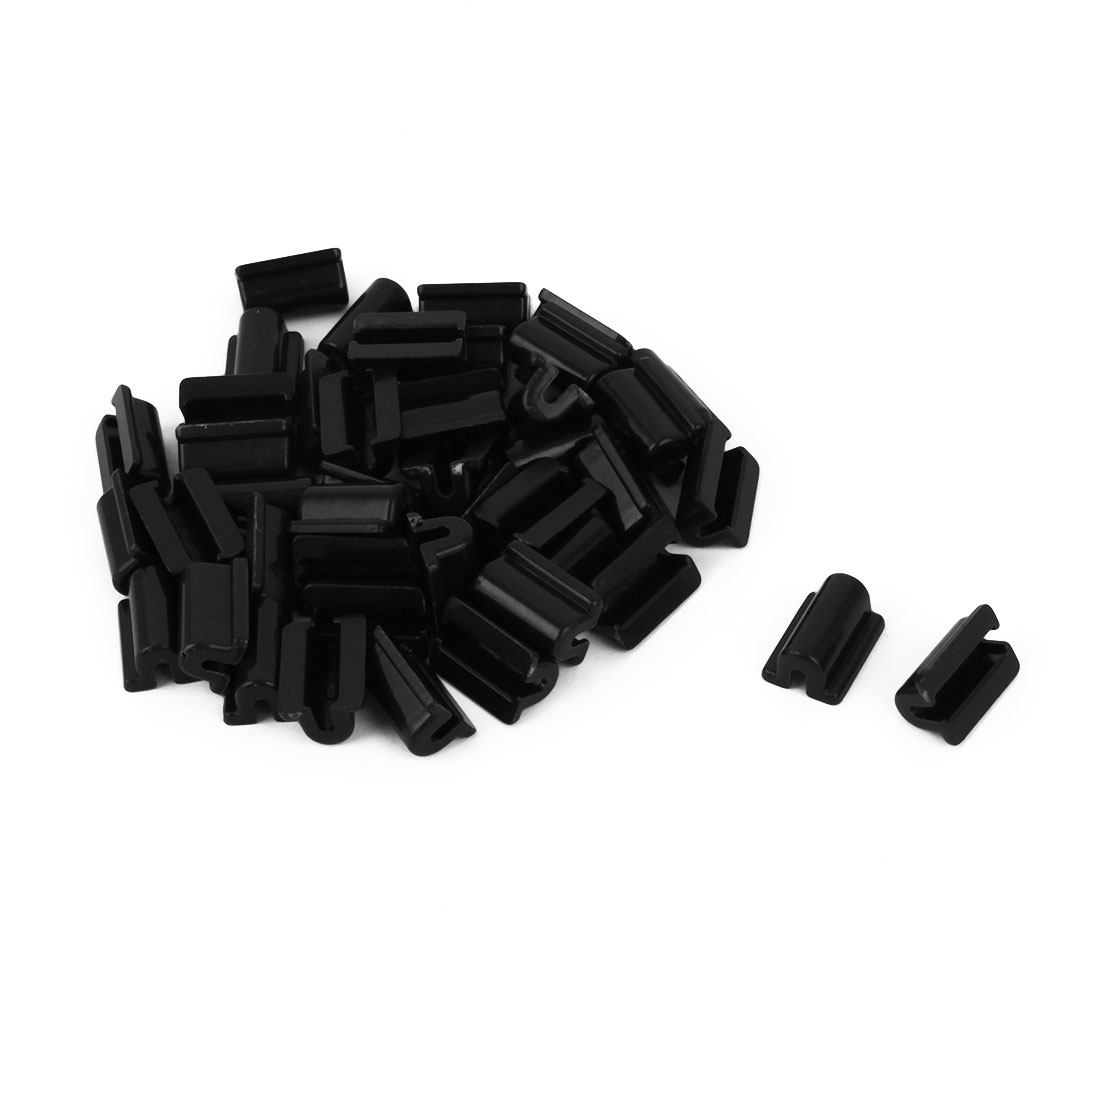 Hairband Decoration Plastic DIY Headband Hair Circle Rope Band Buckle Black 40pcs